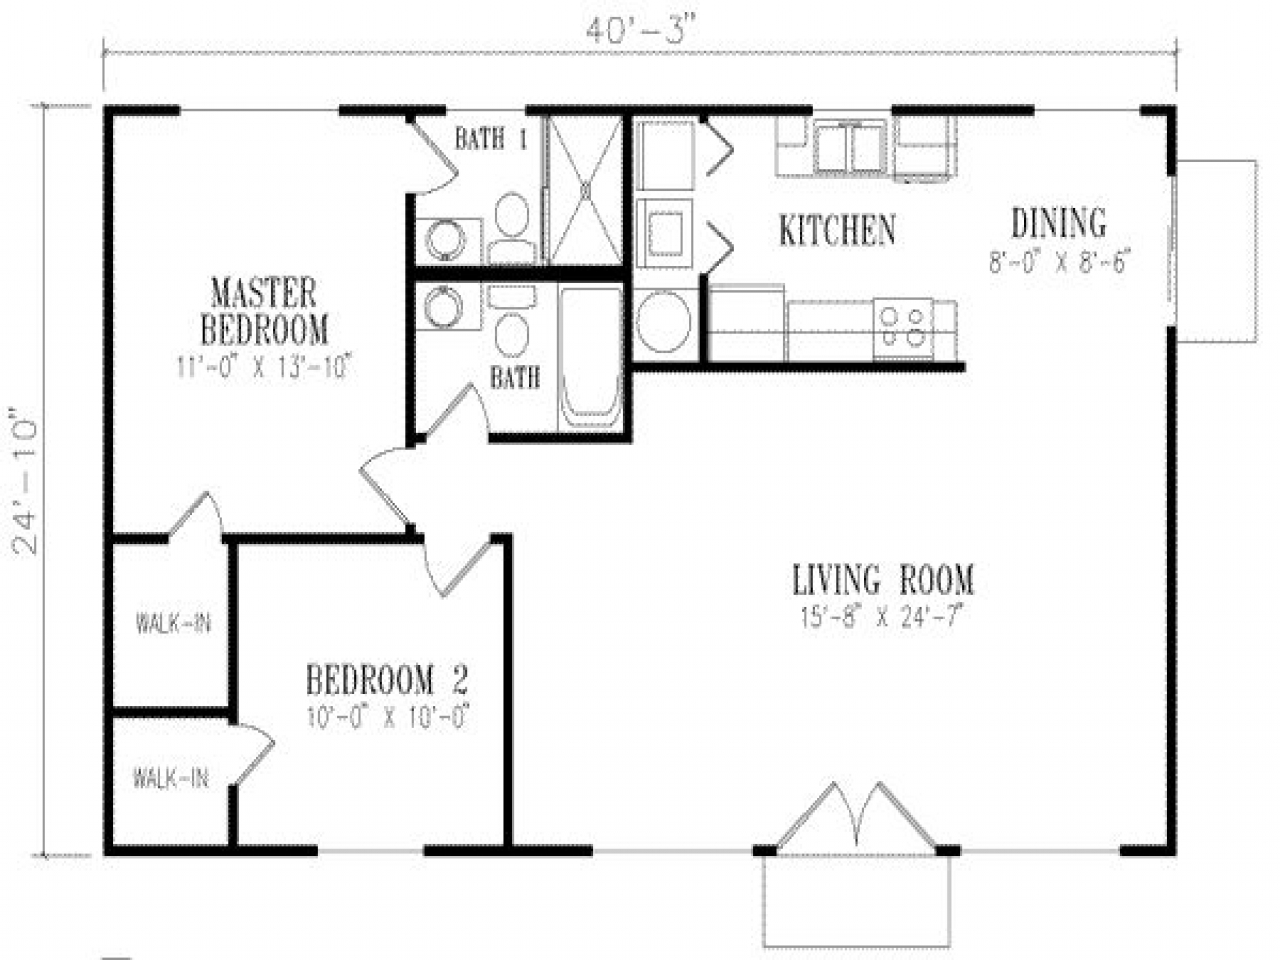 1000 square foot house plans 1 bedroom 500 square foot house home plans under 1000 square feet. Black Bedroom Furniture Sets. Home Design Ideas